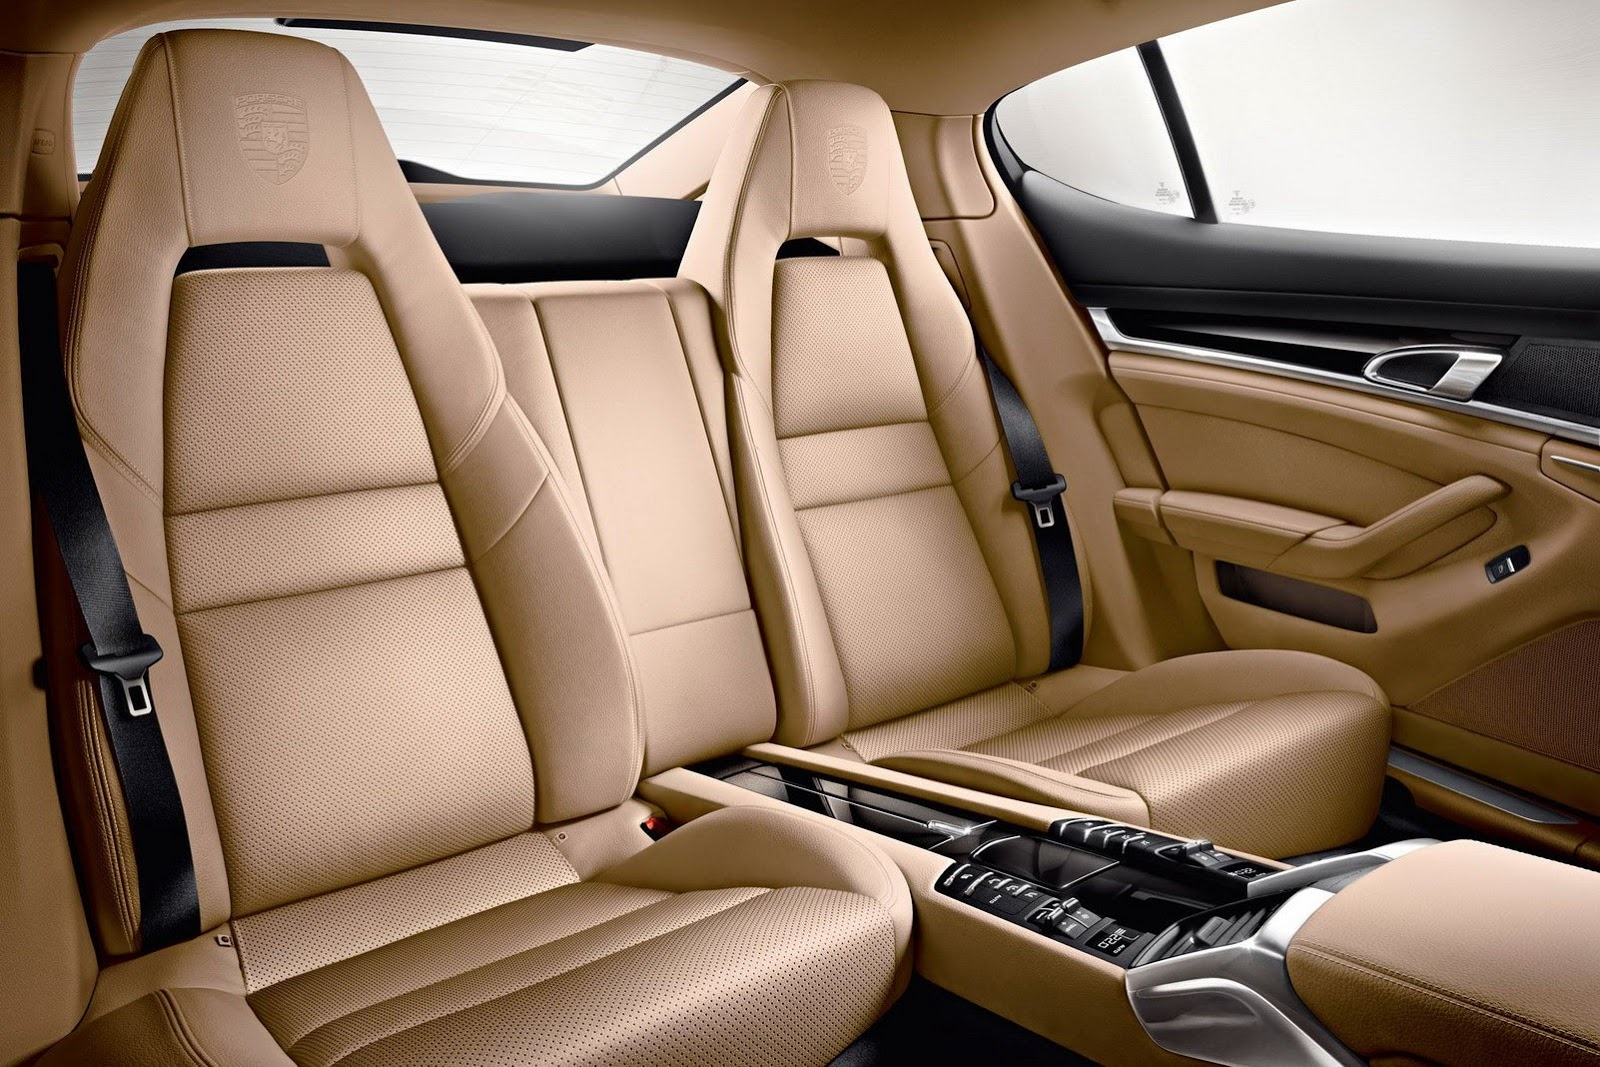 Porsche Panamera Interior Back Seat 2015 Extraordinary Car P